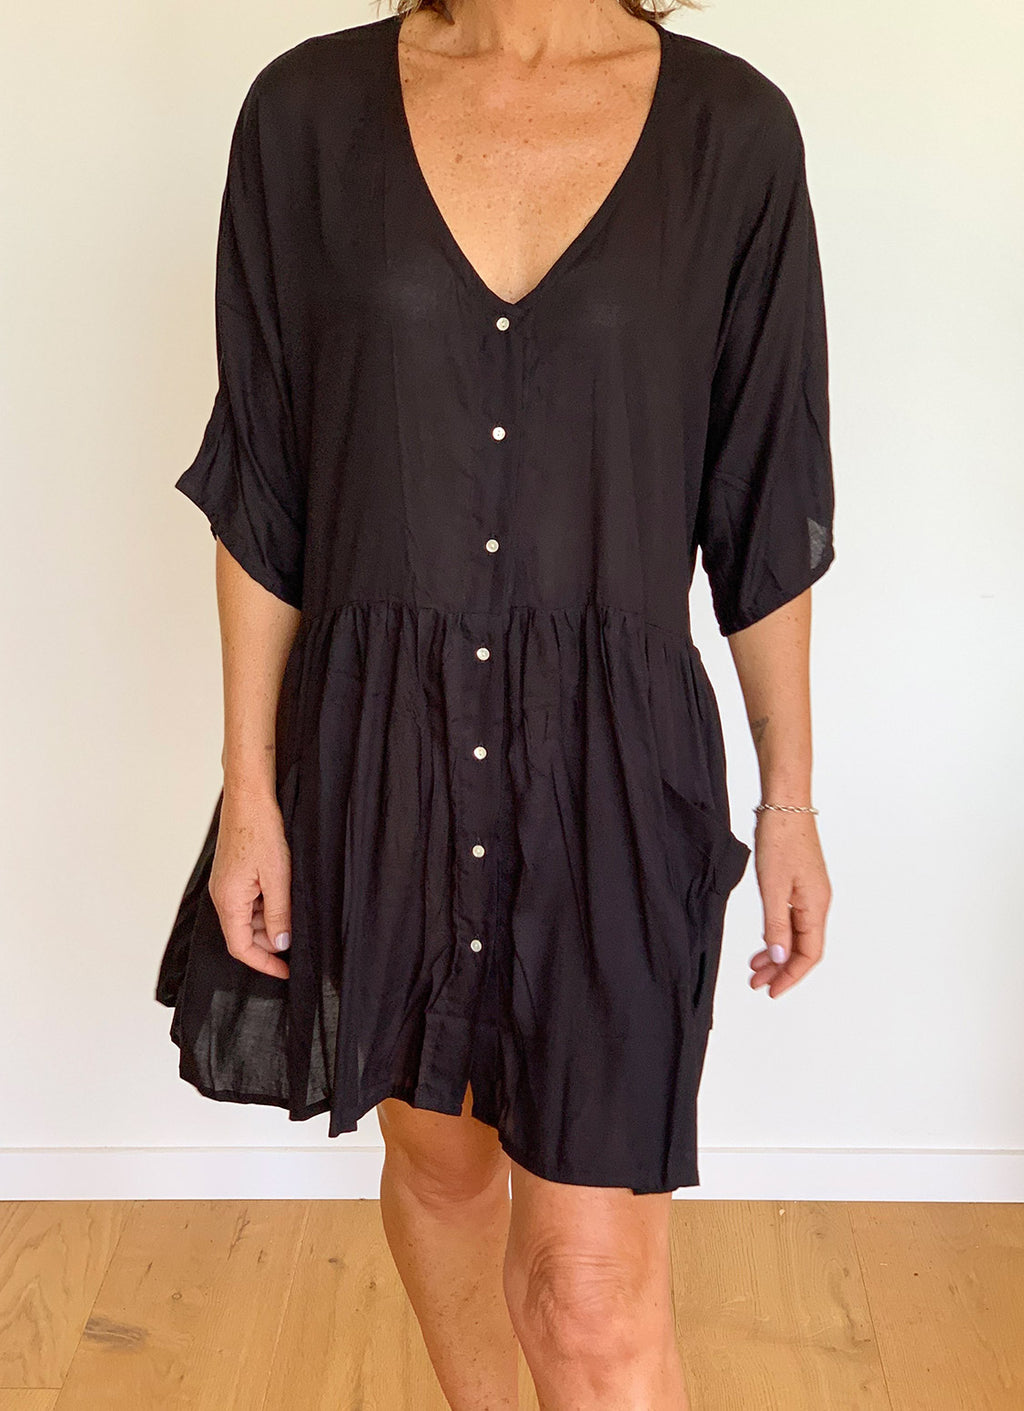 Talia Summer Dress - Black